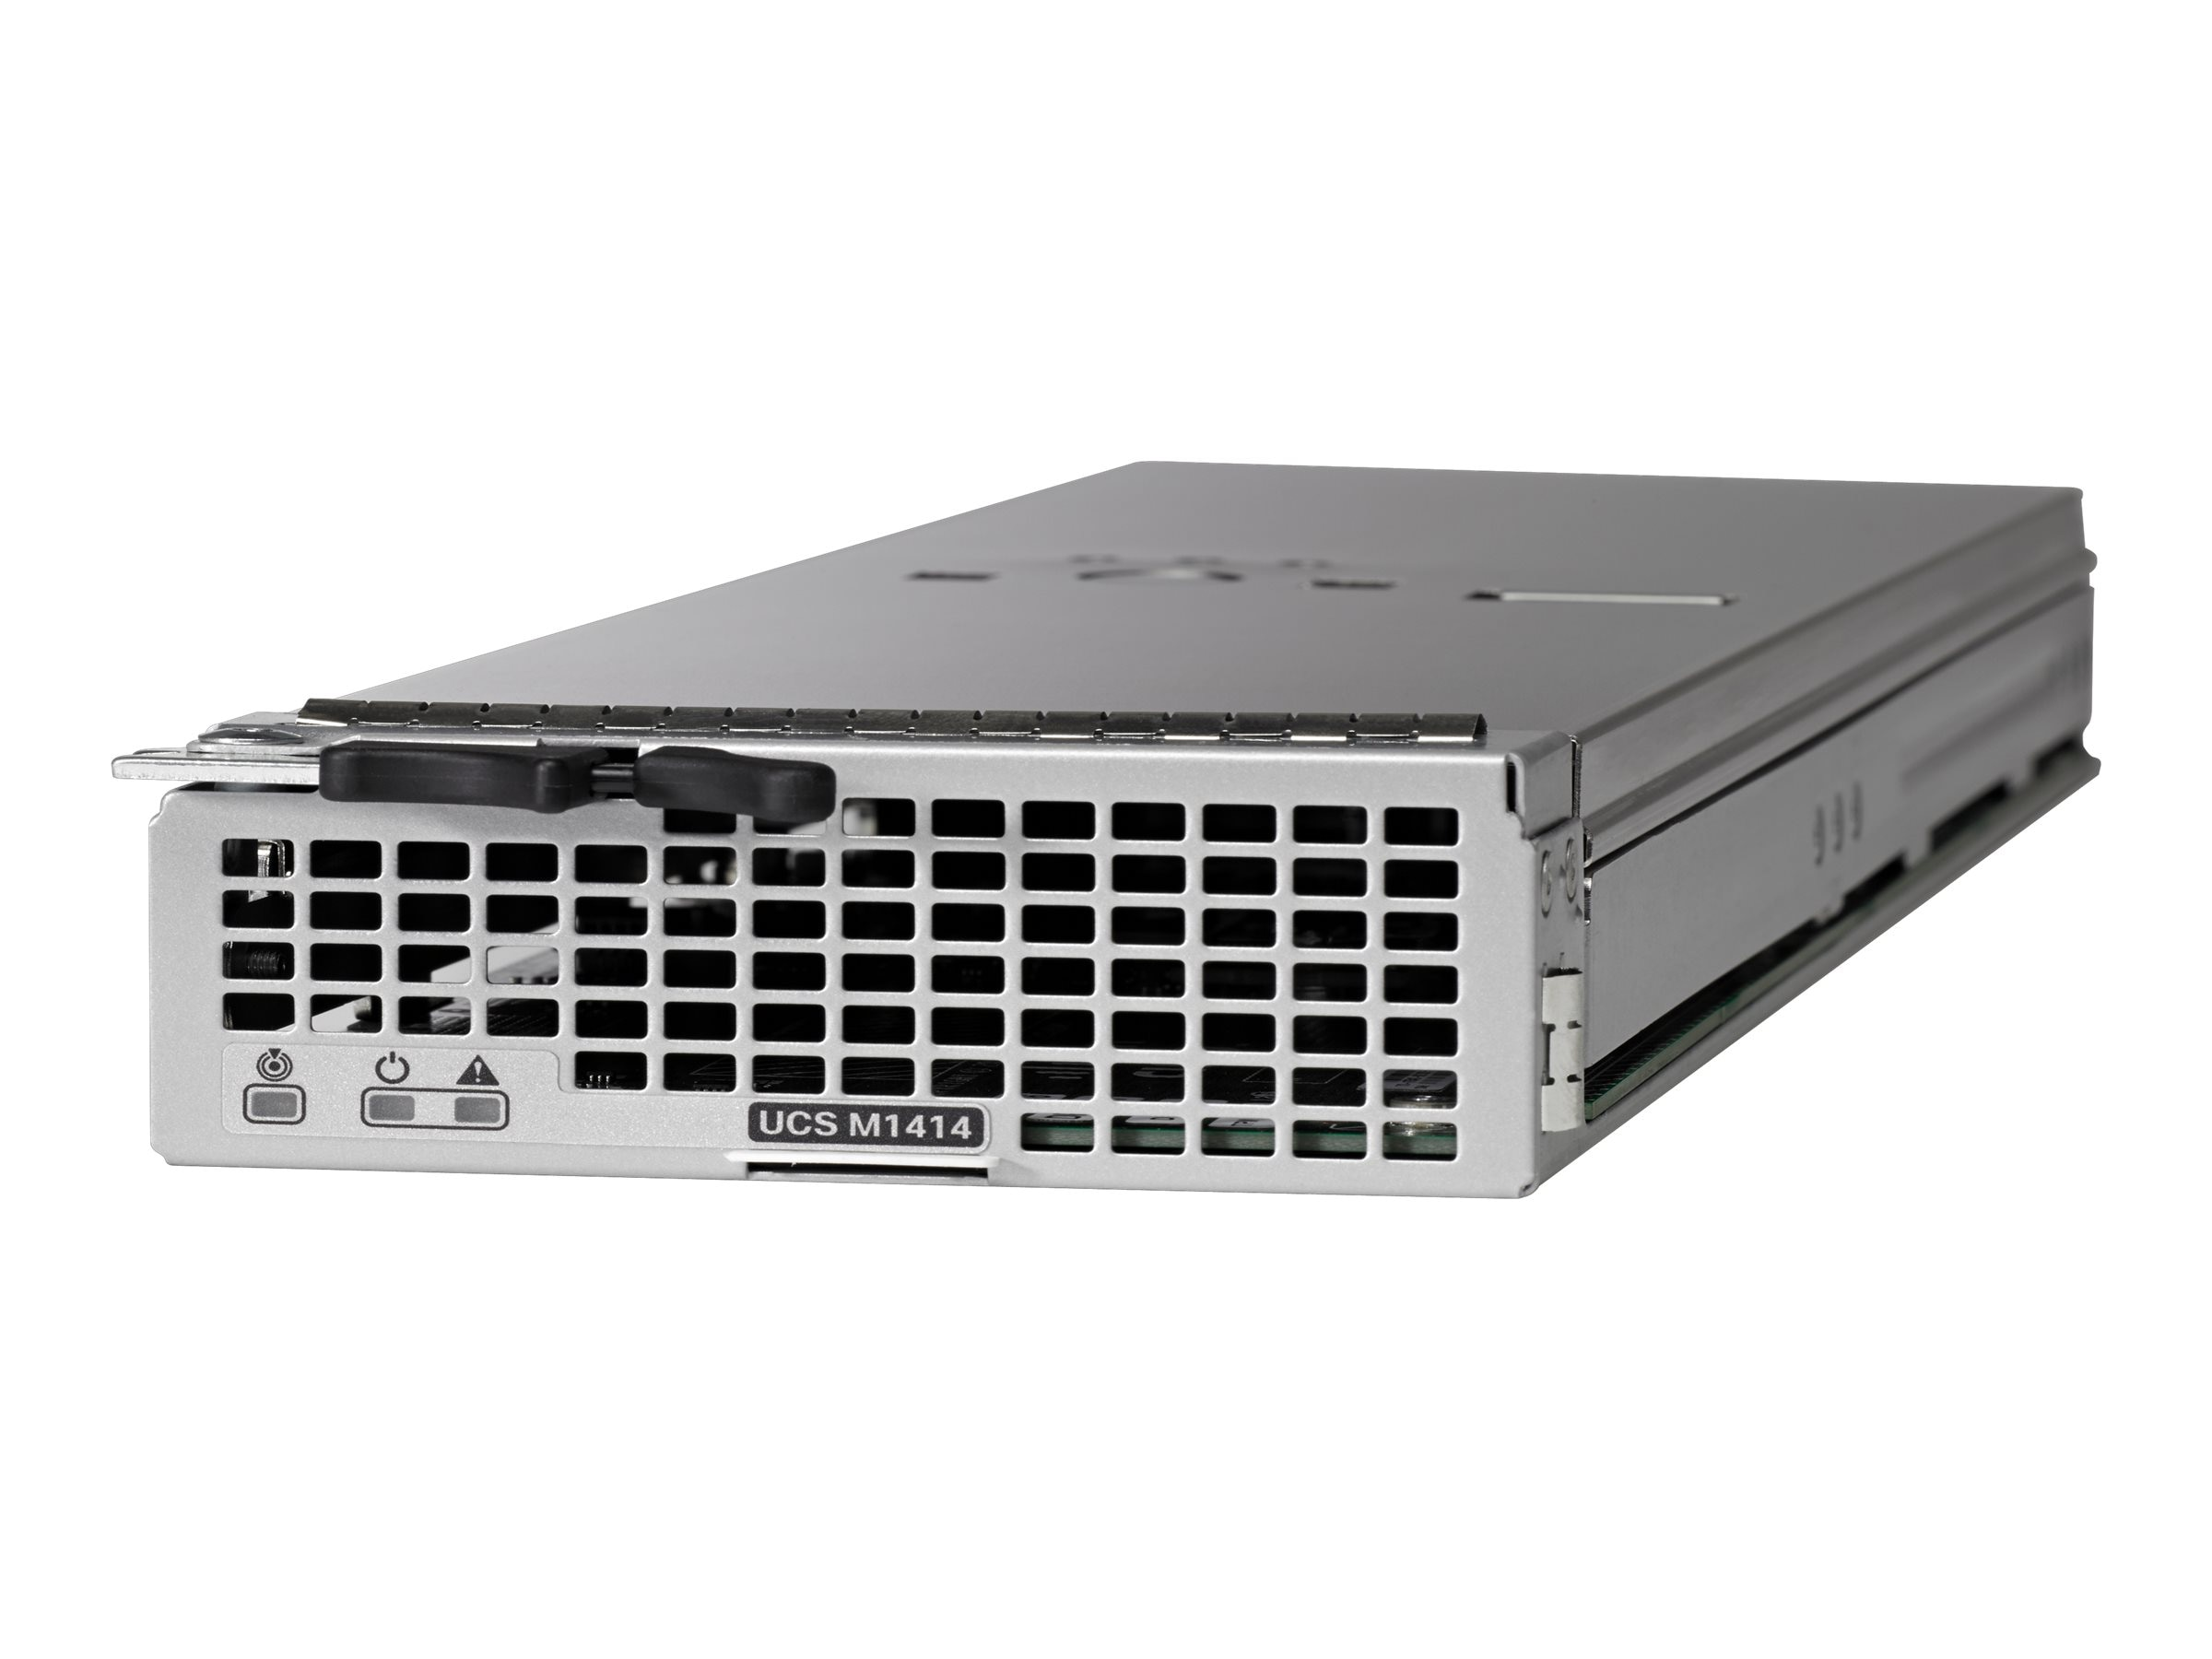 Cisco UCSME-1414L2-M5 Image 1